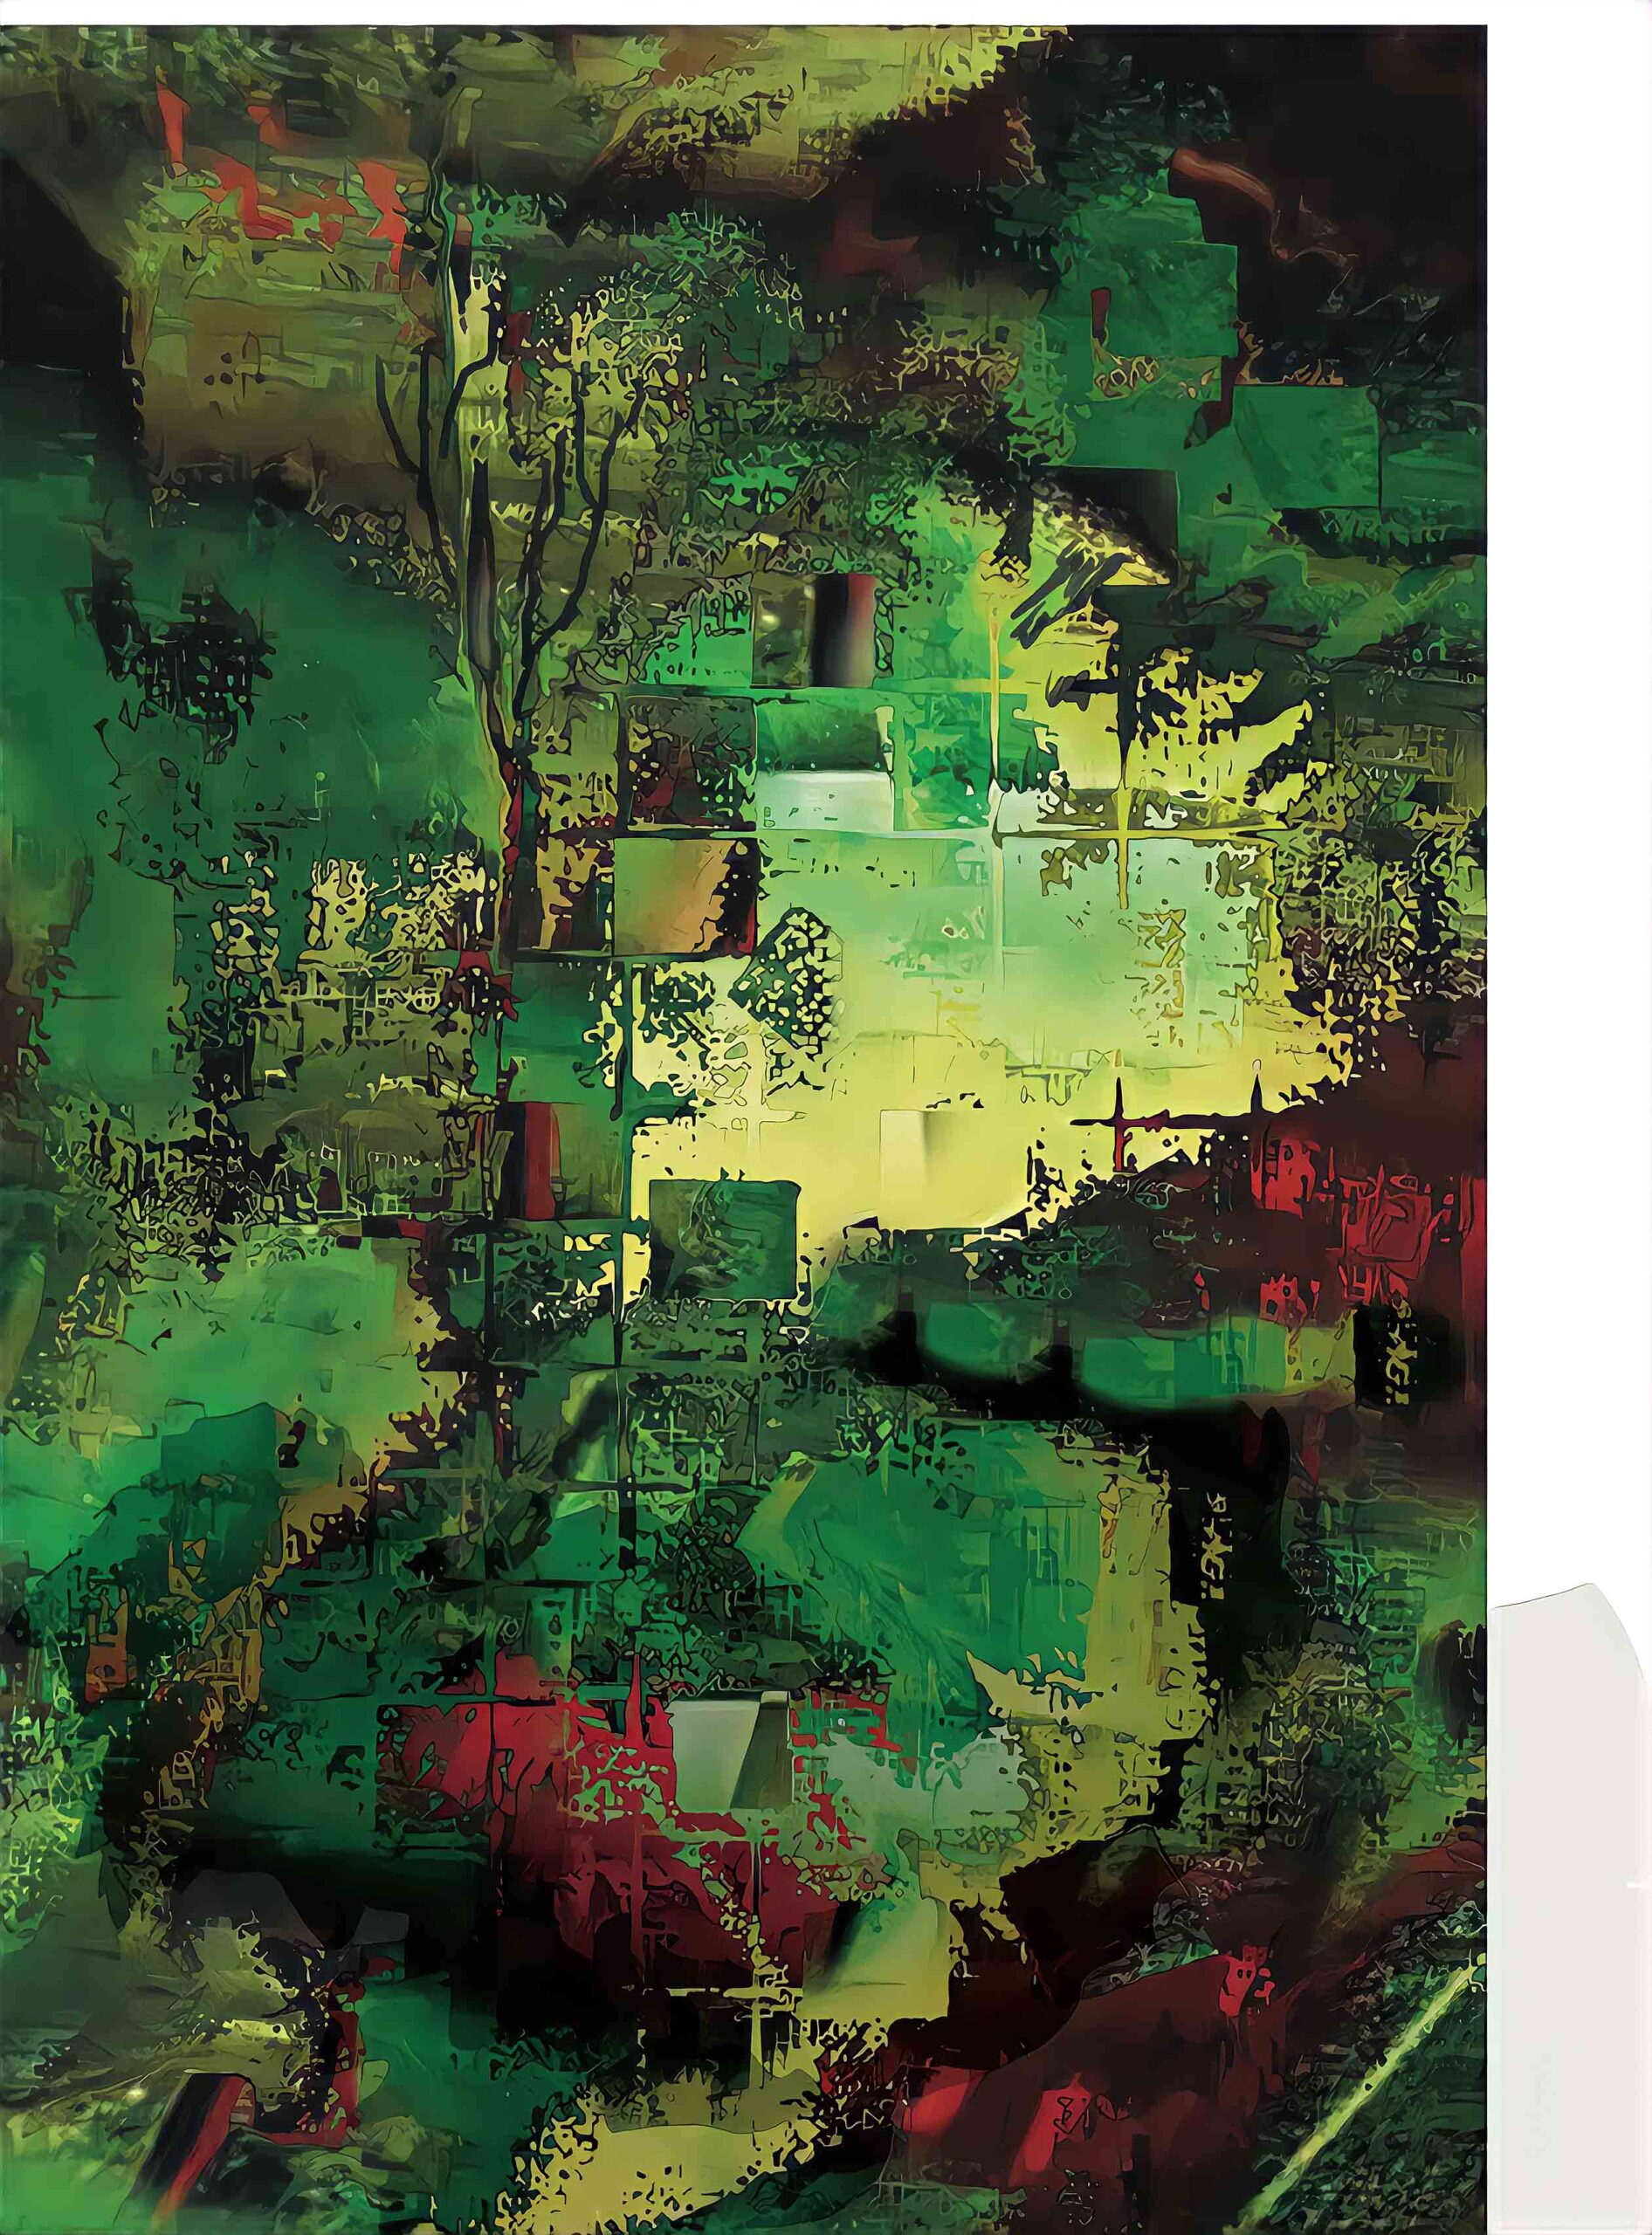 Galerie Ode aan Huub / Forrest living /Free hand / Solid dream